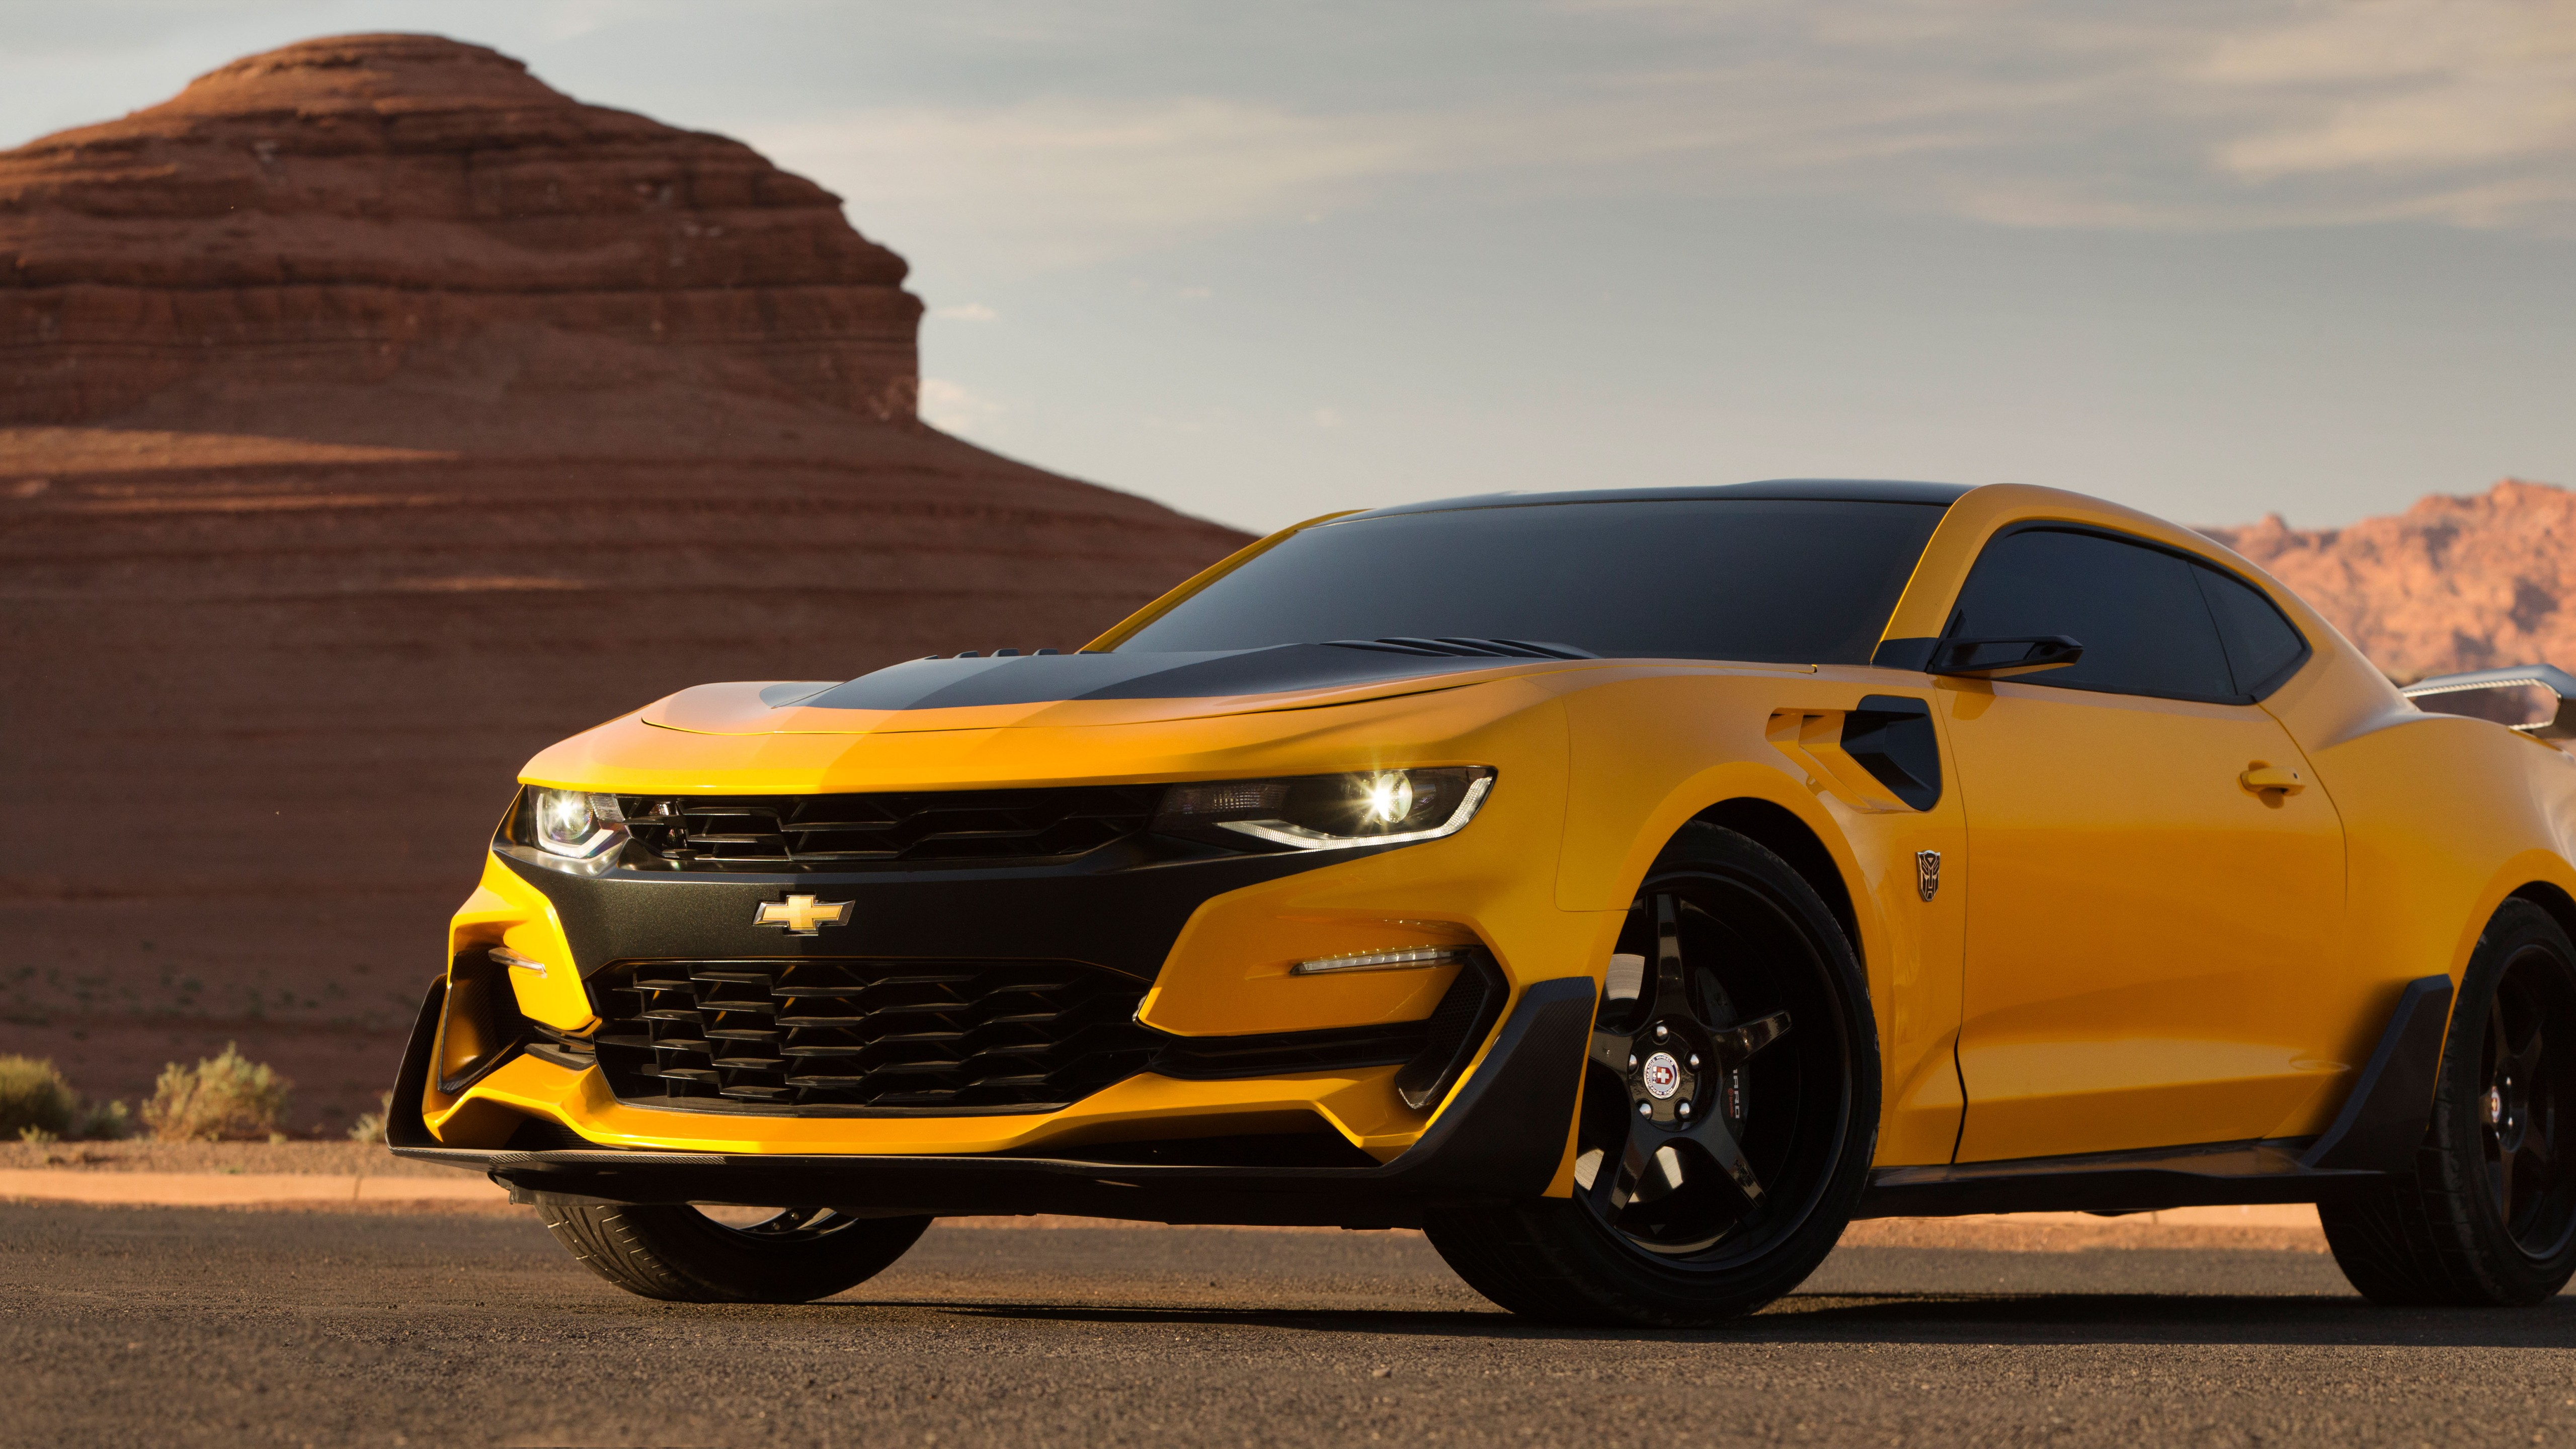 Wallpaper Chevrolet Camaro Bumblebee Transformers The